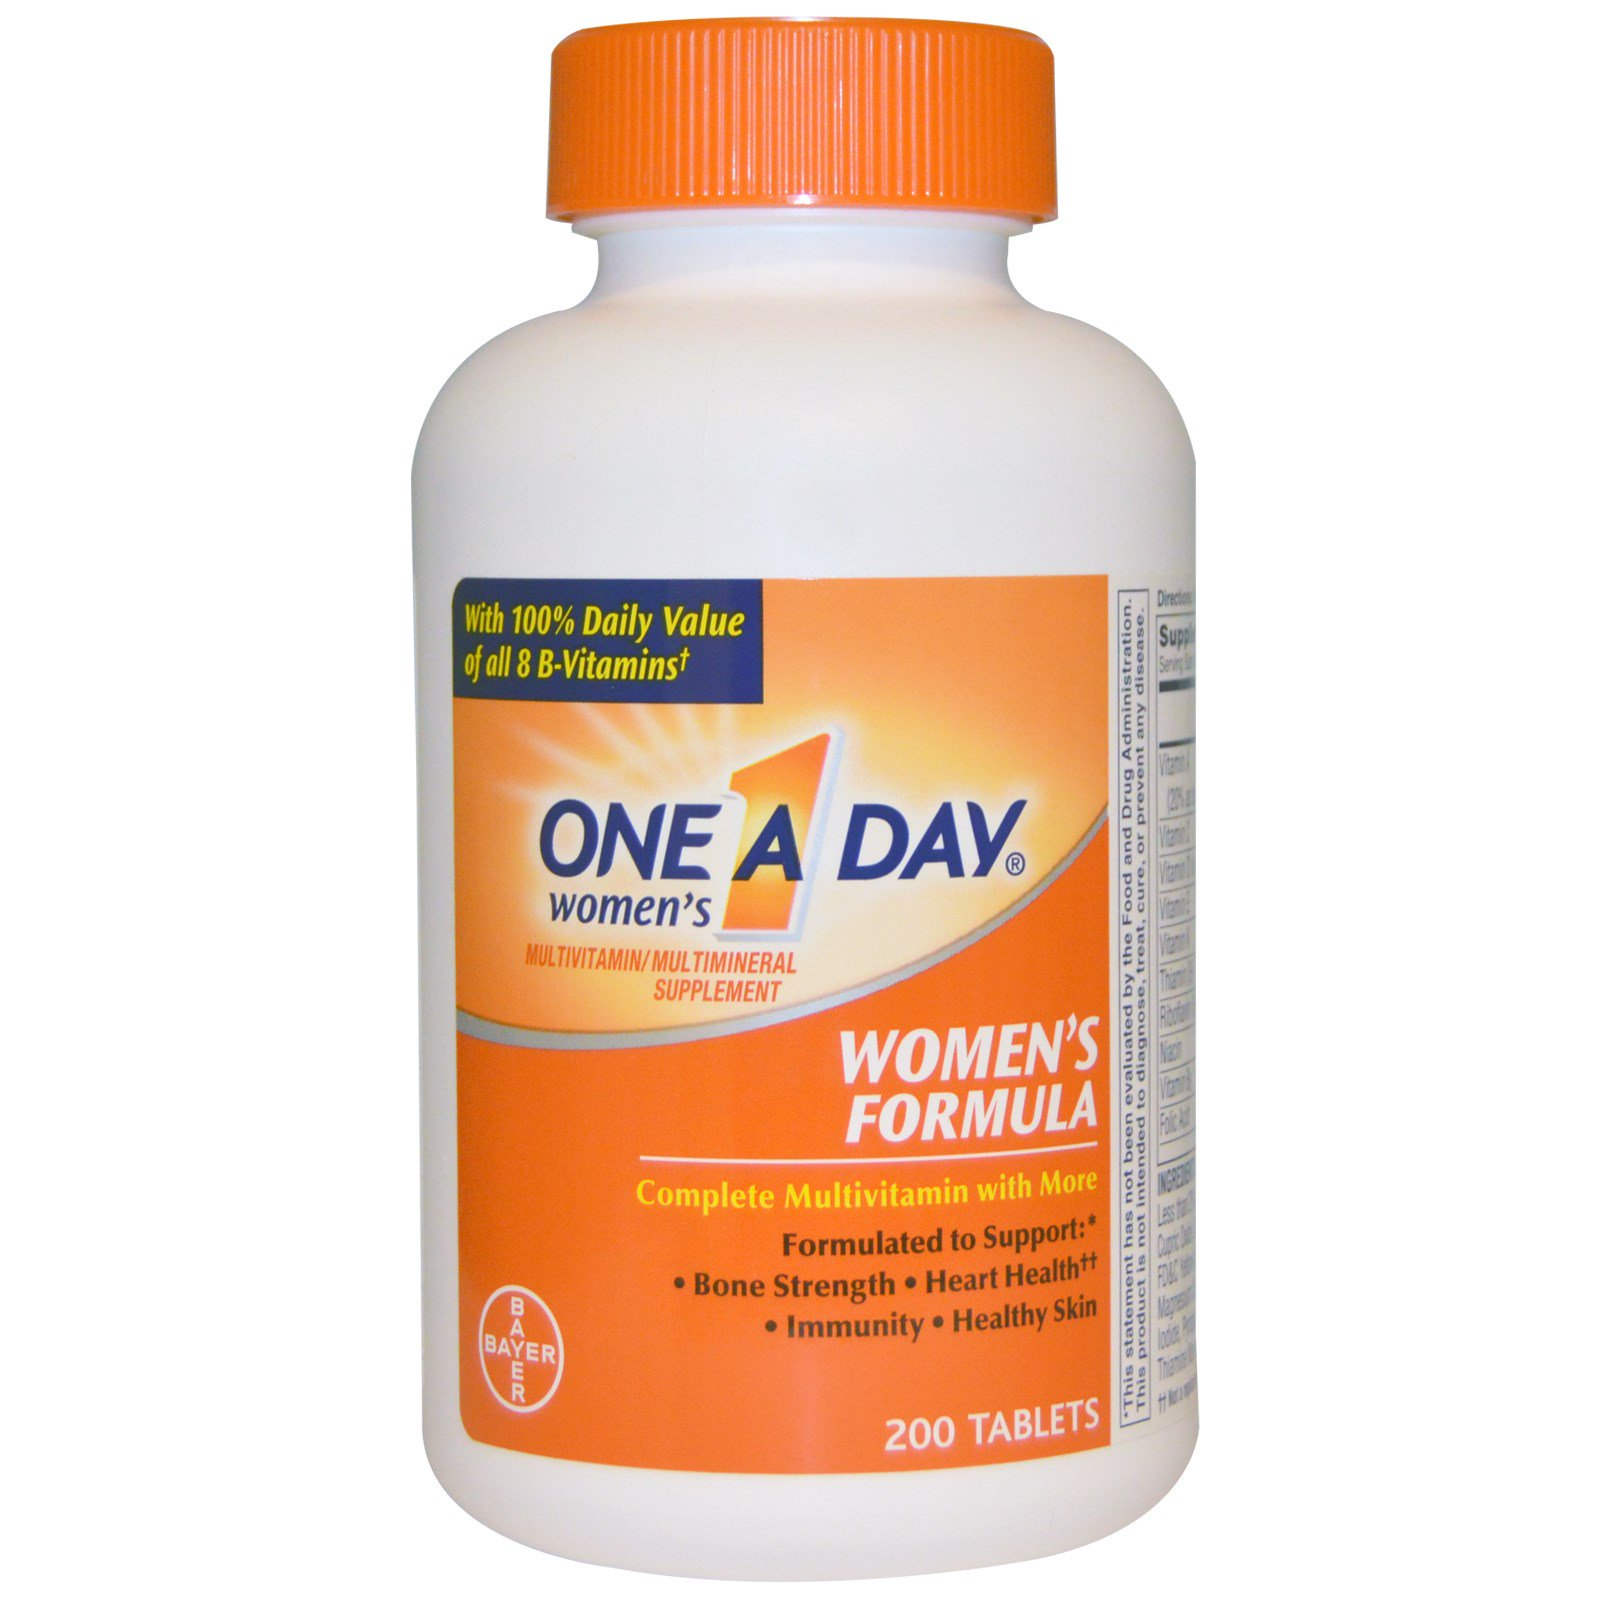 New One A Day ® with Nature's Medley is the only 1 complete multivitamin with natural antioxidants 2 from one total serving 3 of fruits and vegetables. Uniquely formulated for Men, Women, and Kids.